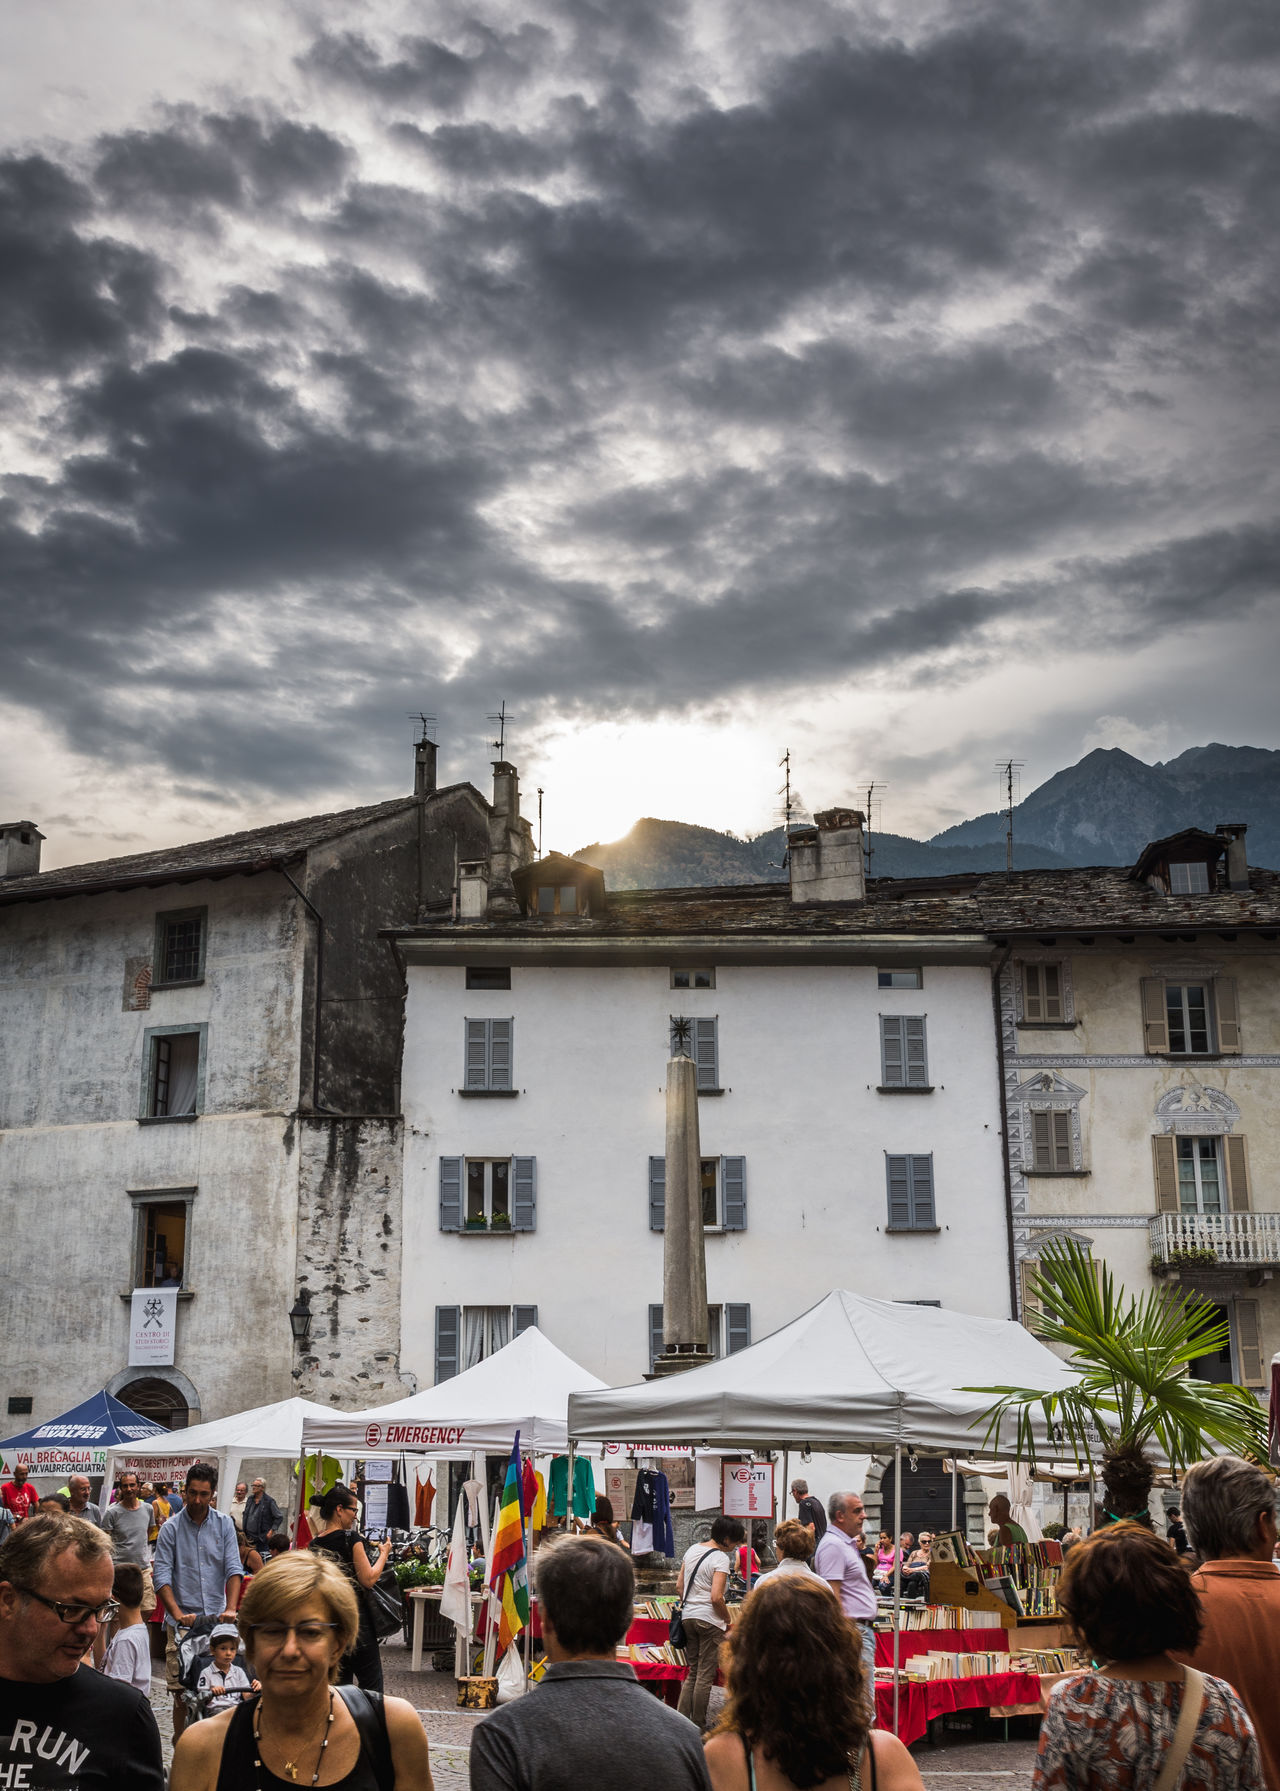 Adult Adults Only Architecture Building Exterior Built Structure Chiavenna Cloud - Sky Community Crowd Day Italy Large Group Of People Leisure Activity Market Market Stall Men Outdoors People Real People Sky Togetherness Women